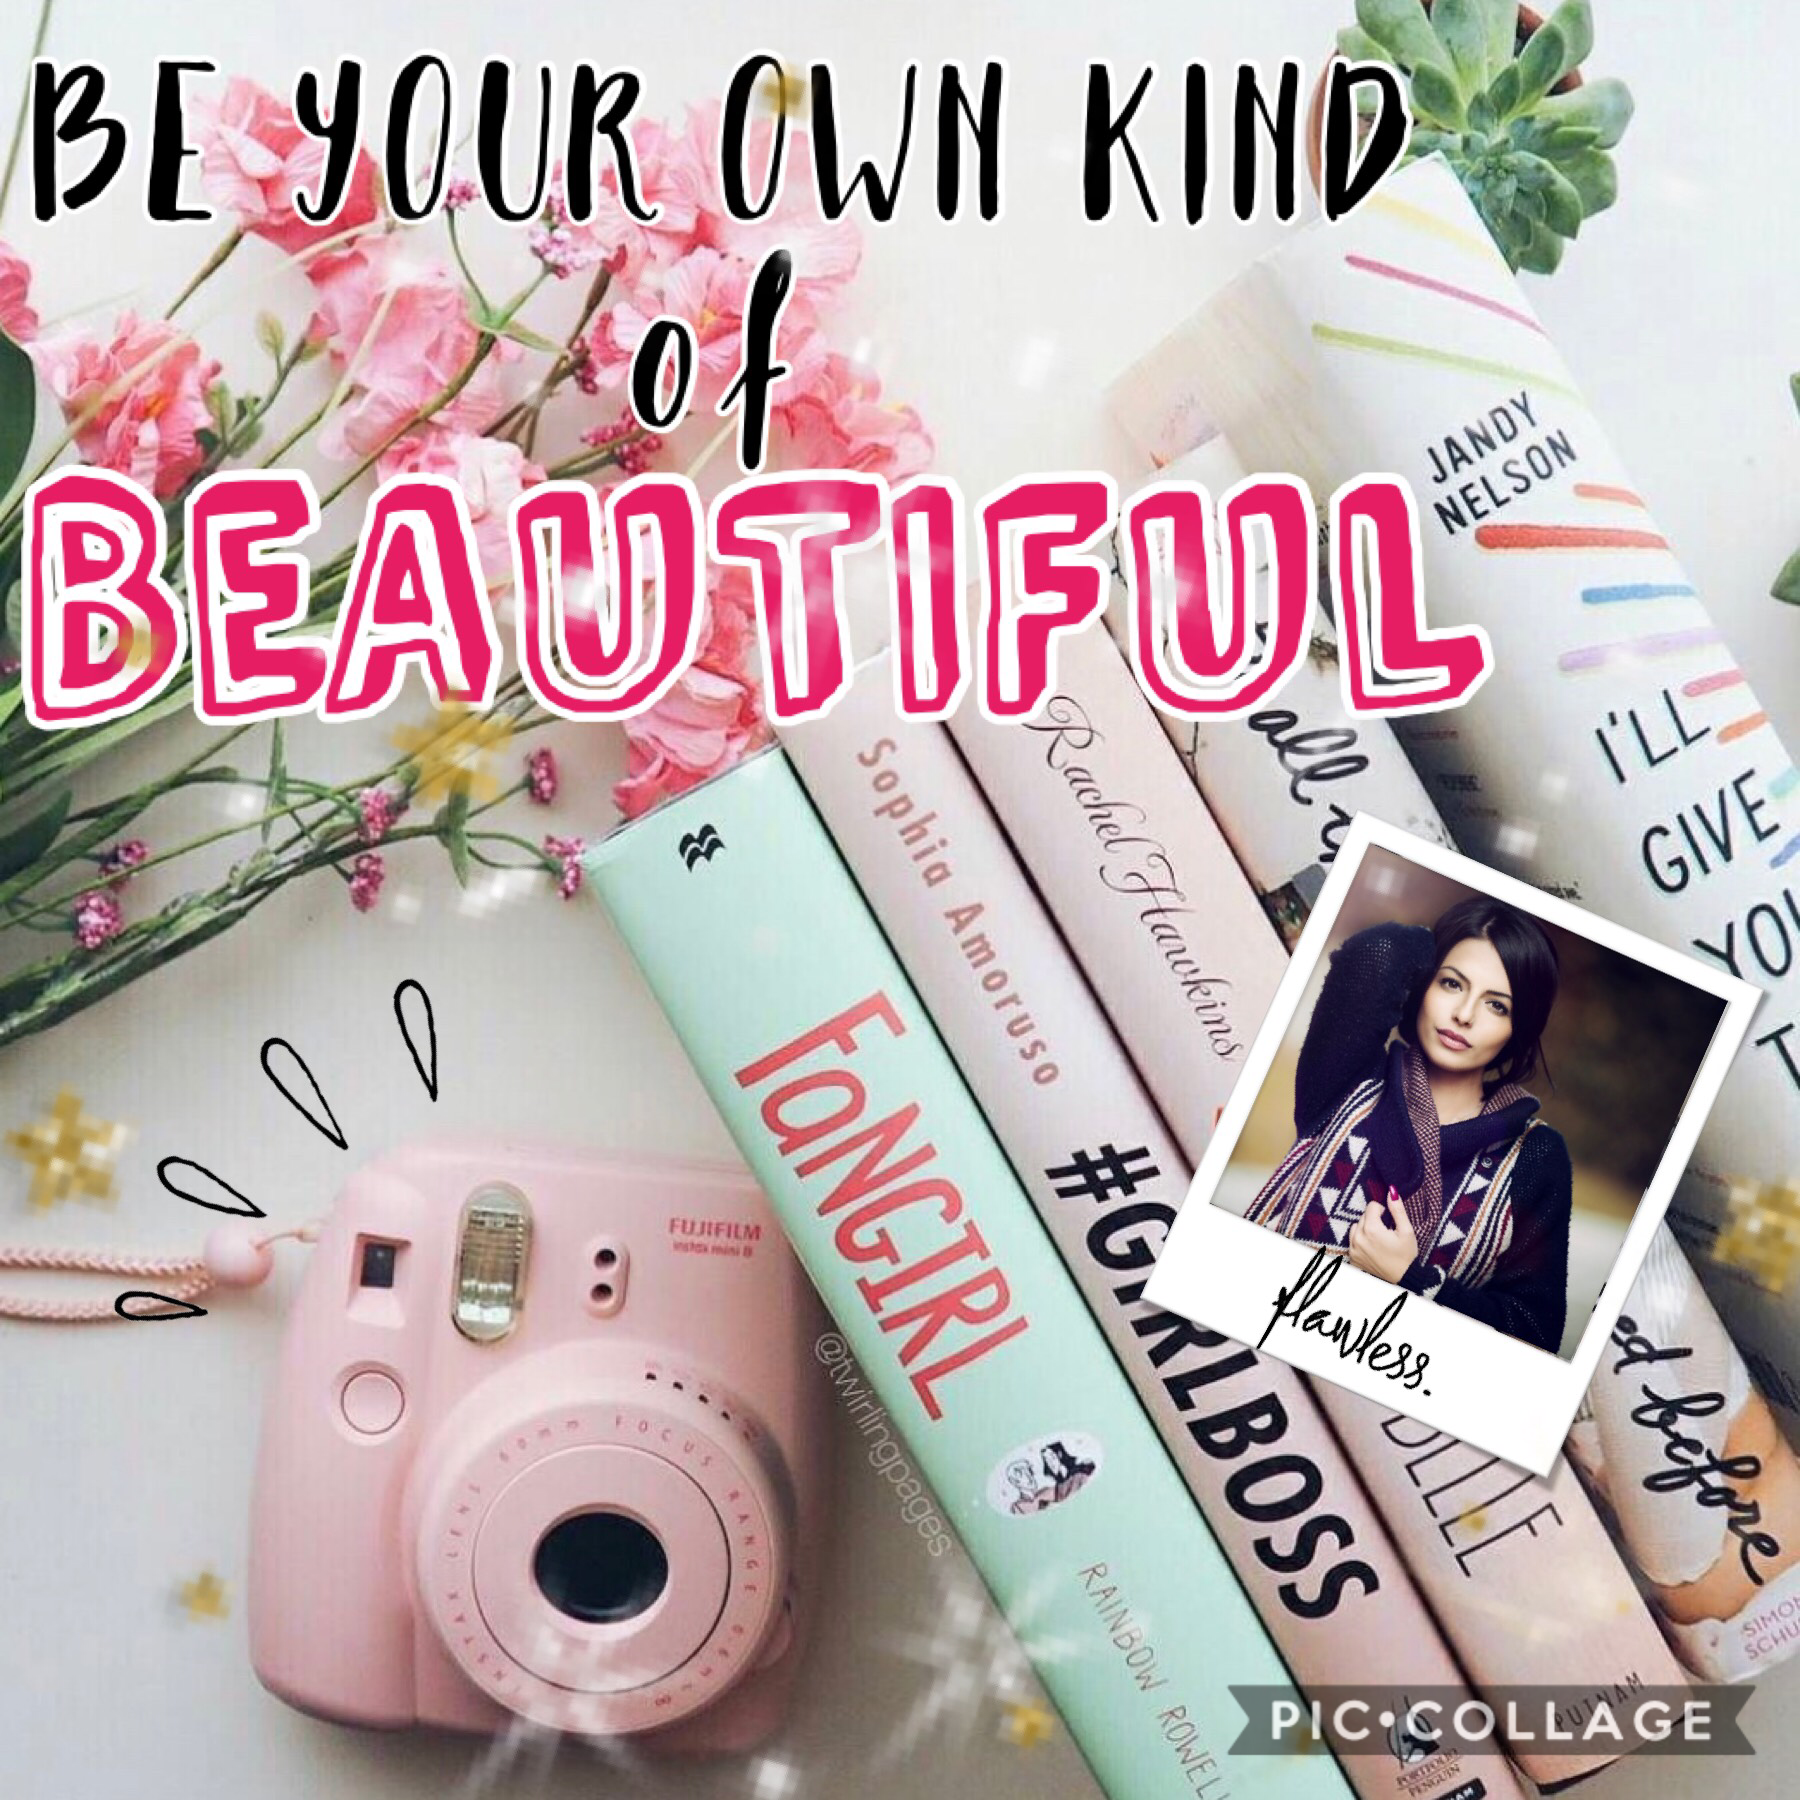 Be your own kind of beautiful 🌺 🌺